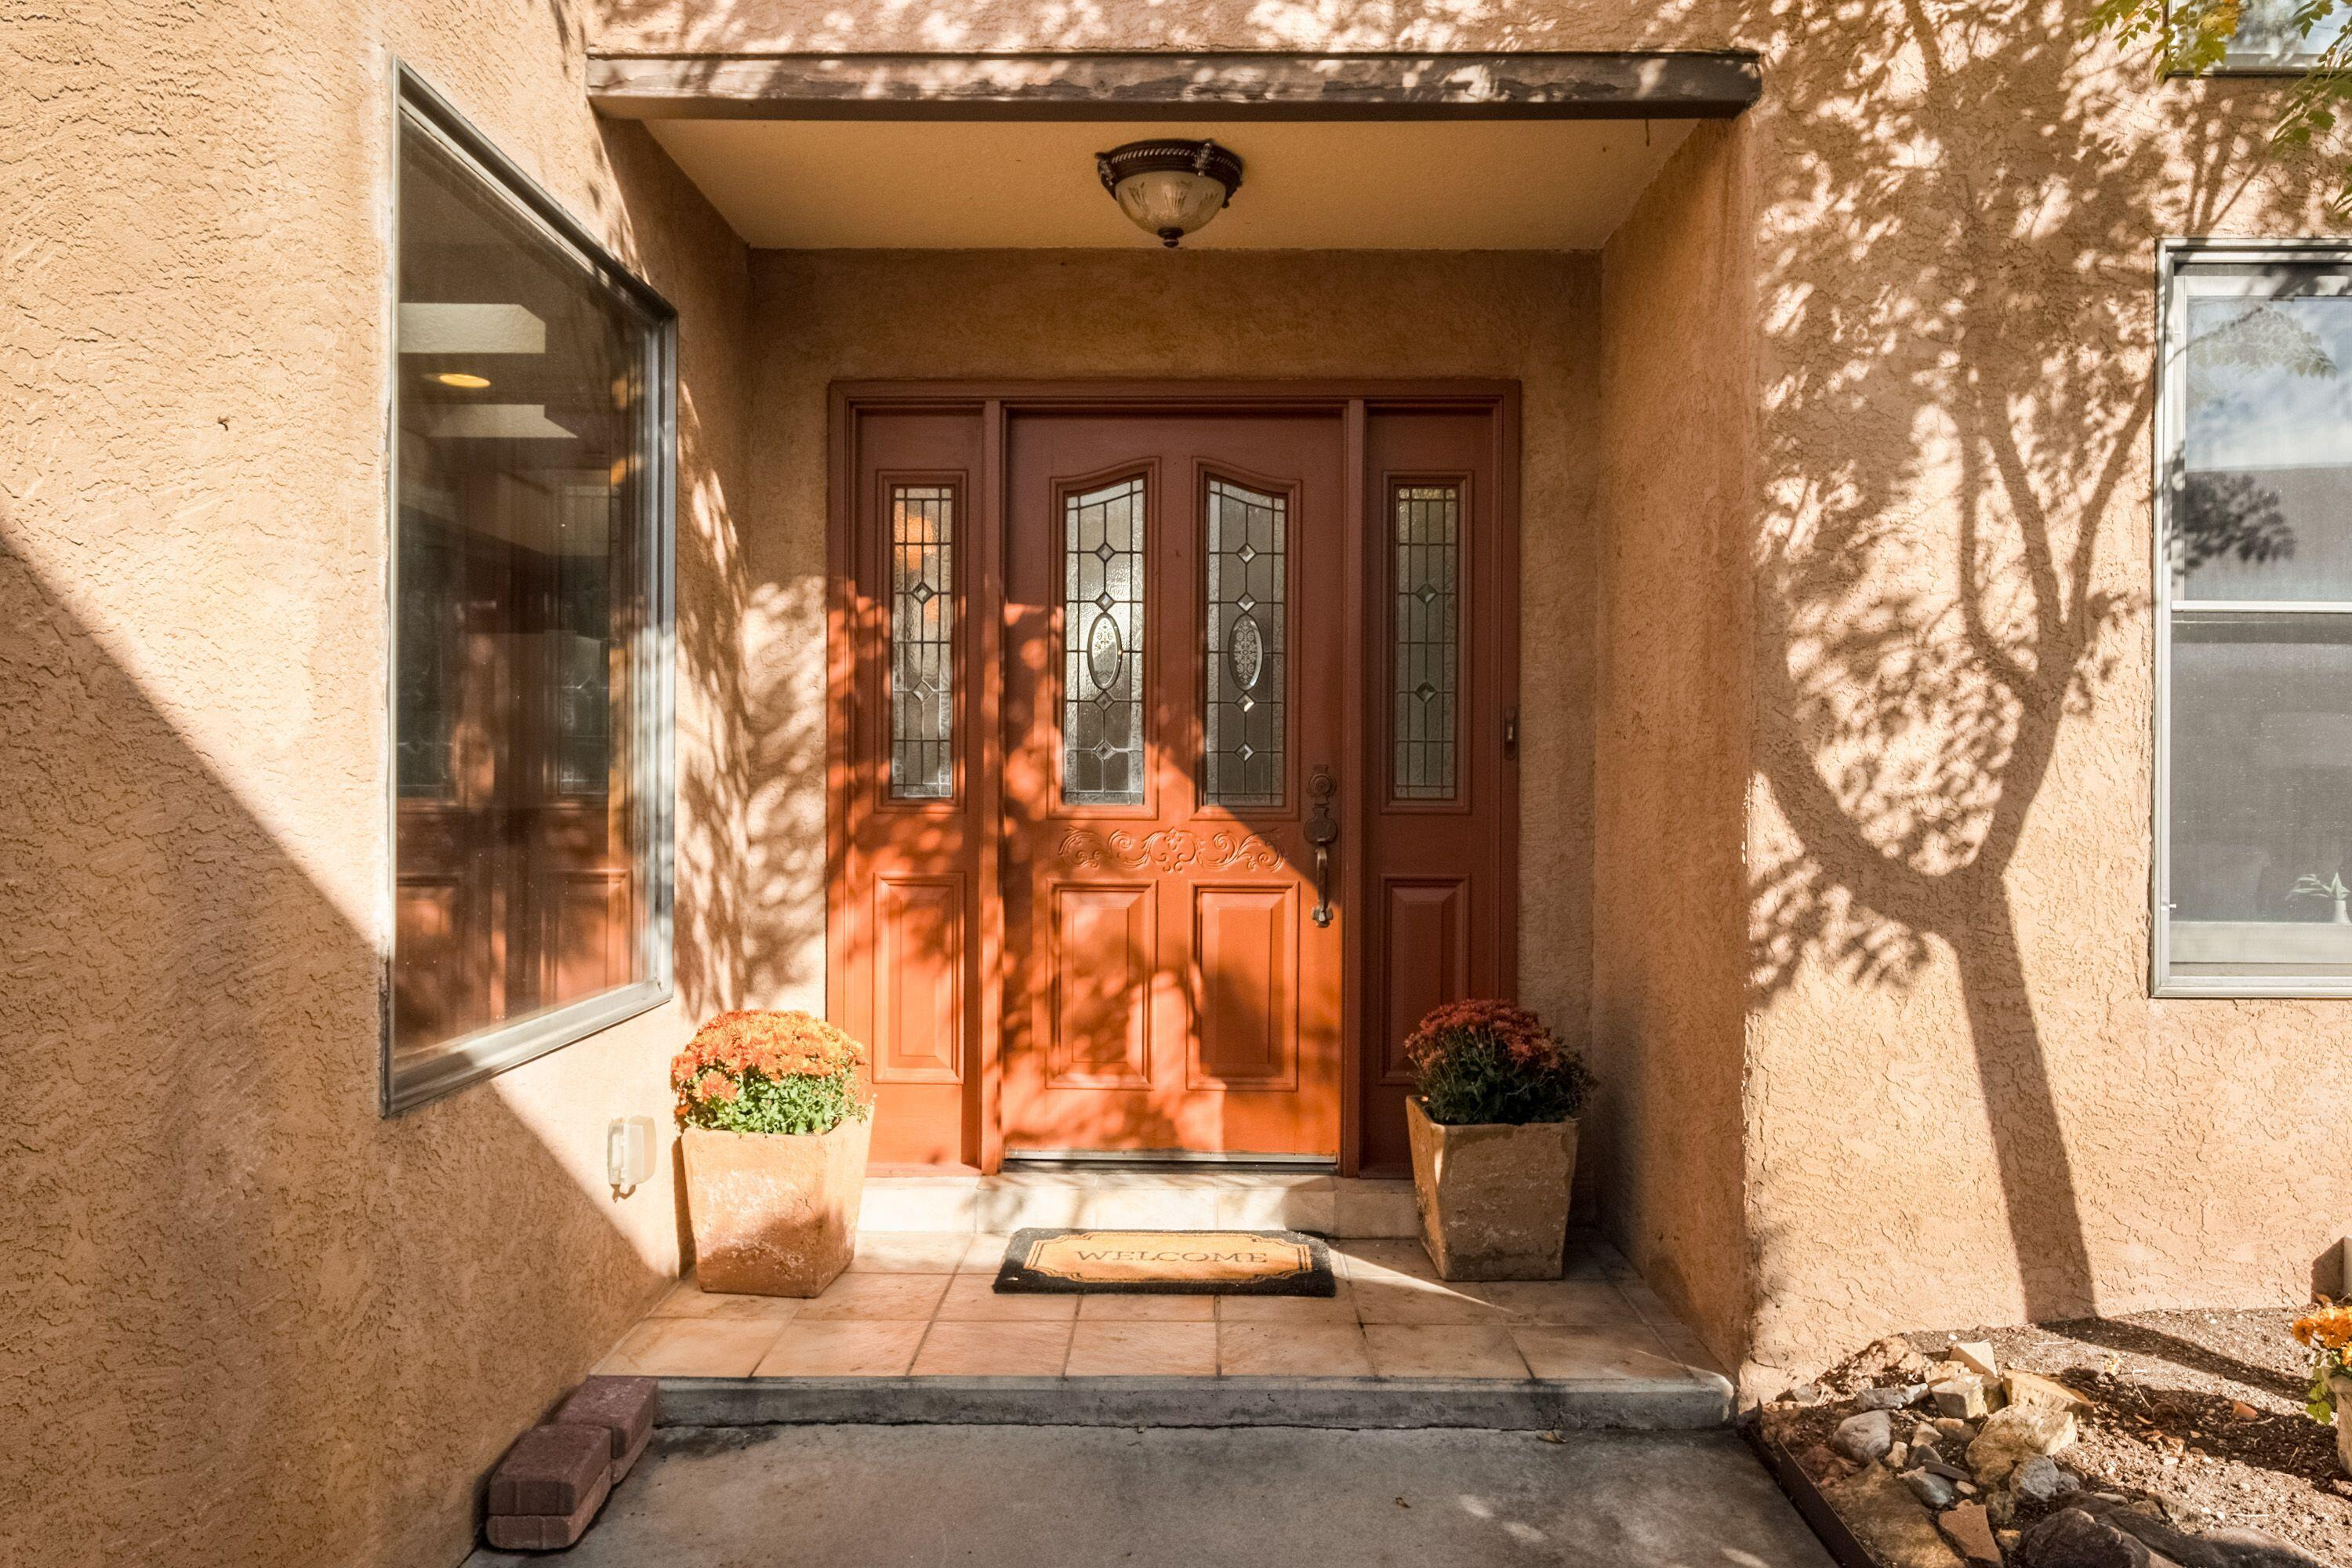 WELCOME HOME to this beautiful single story in desirable Tanoan. Lots of Natural light welcomes you inside through the well appointed windows and skylights.This well loved home is an Estate Sale. PROPERTY SOLD AS IS.